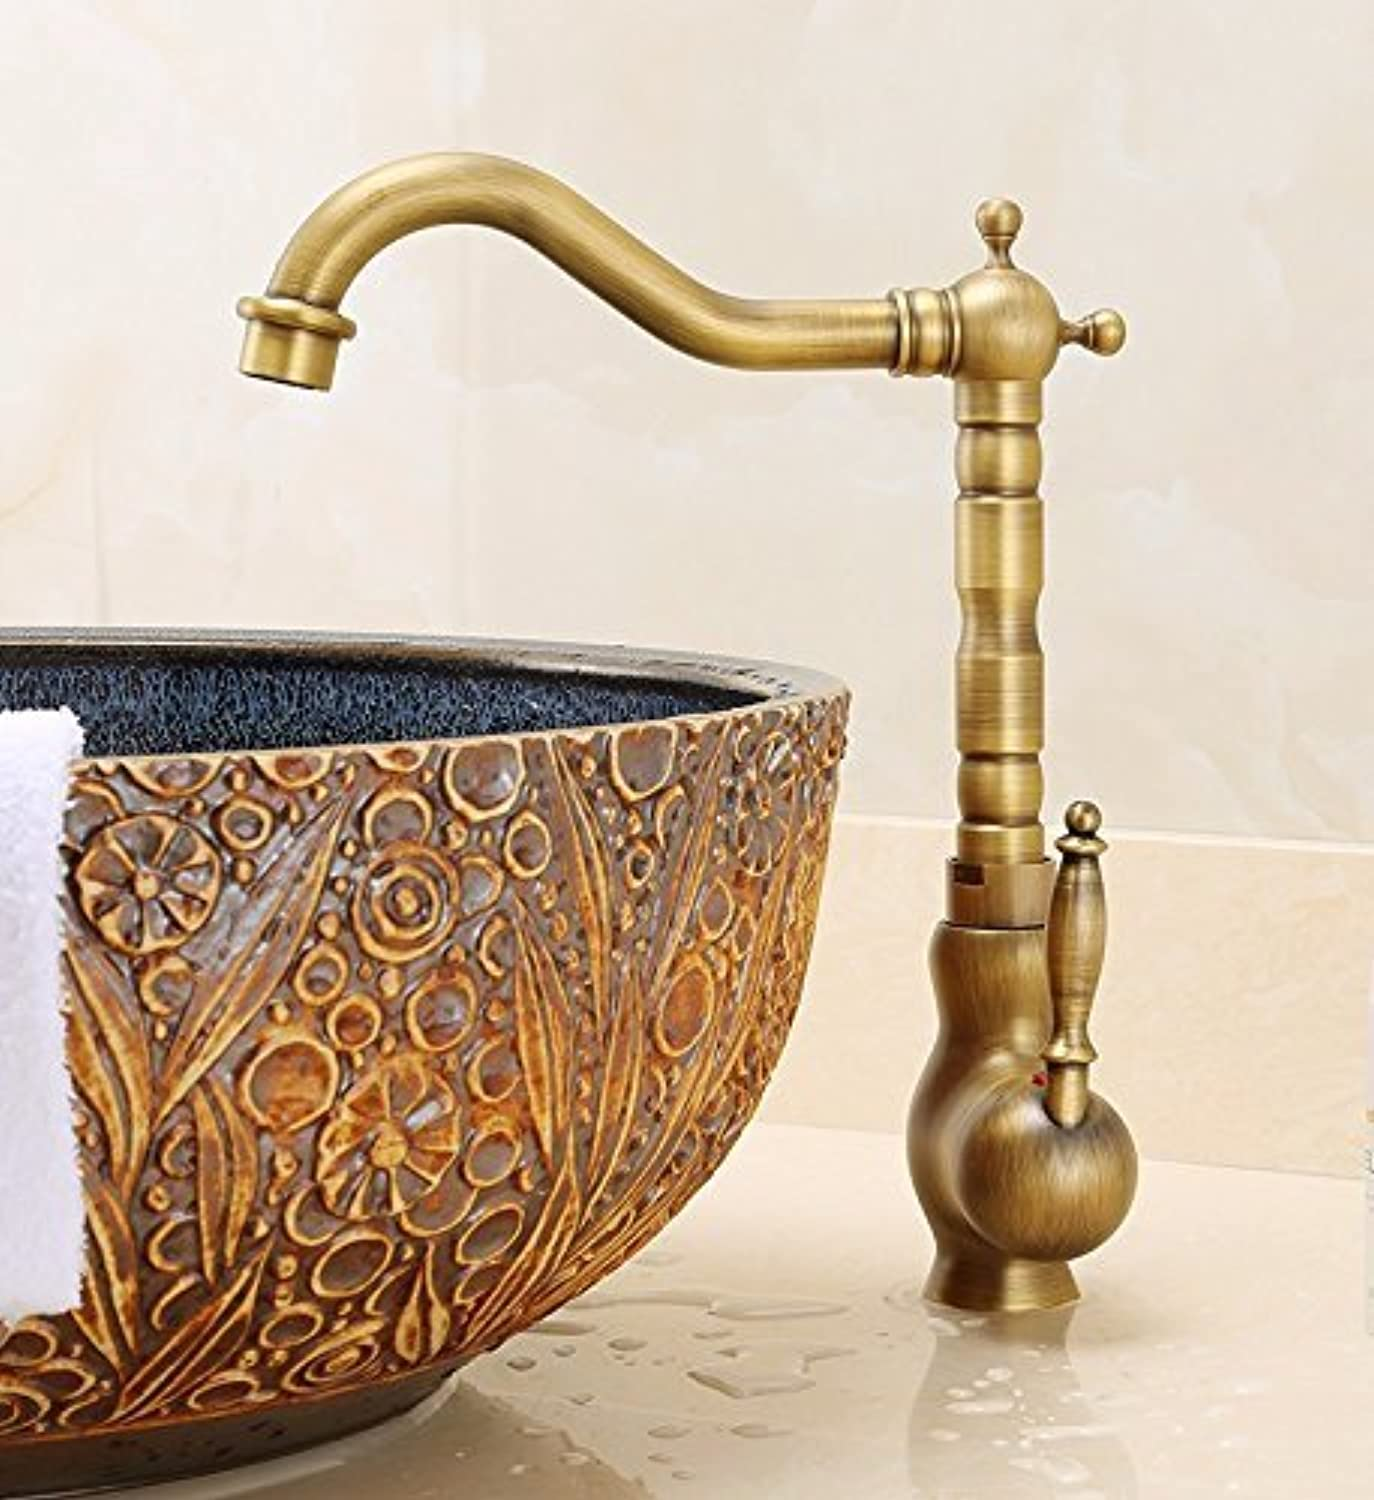 Ywqwdae Washroom Sink Mixer Tap copper European retro style Hot and cold redate Sit Wash basin Brushed Single hole